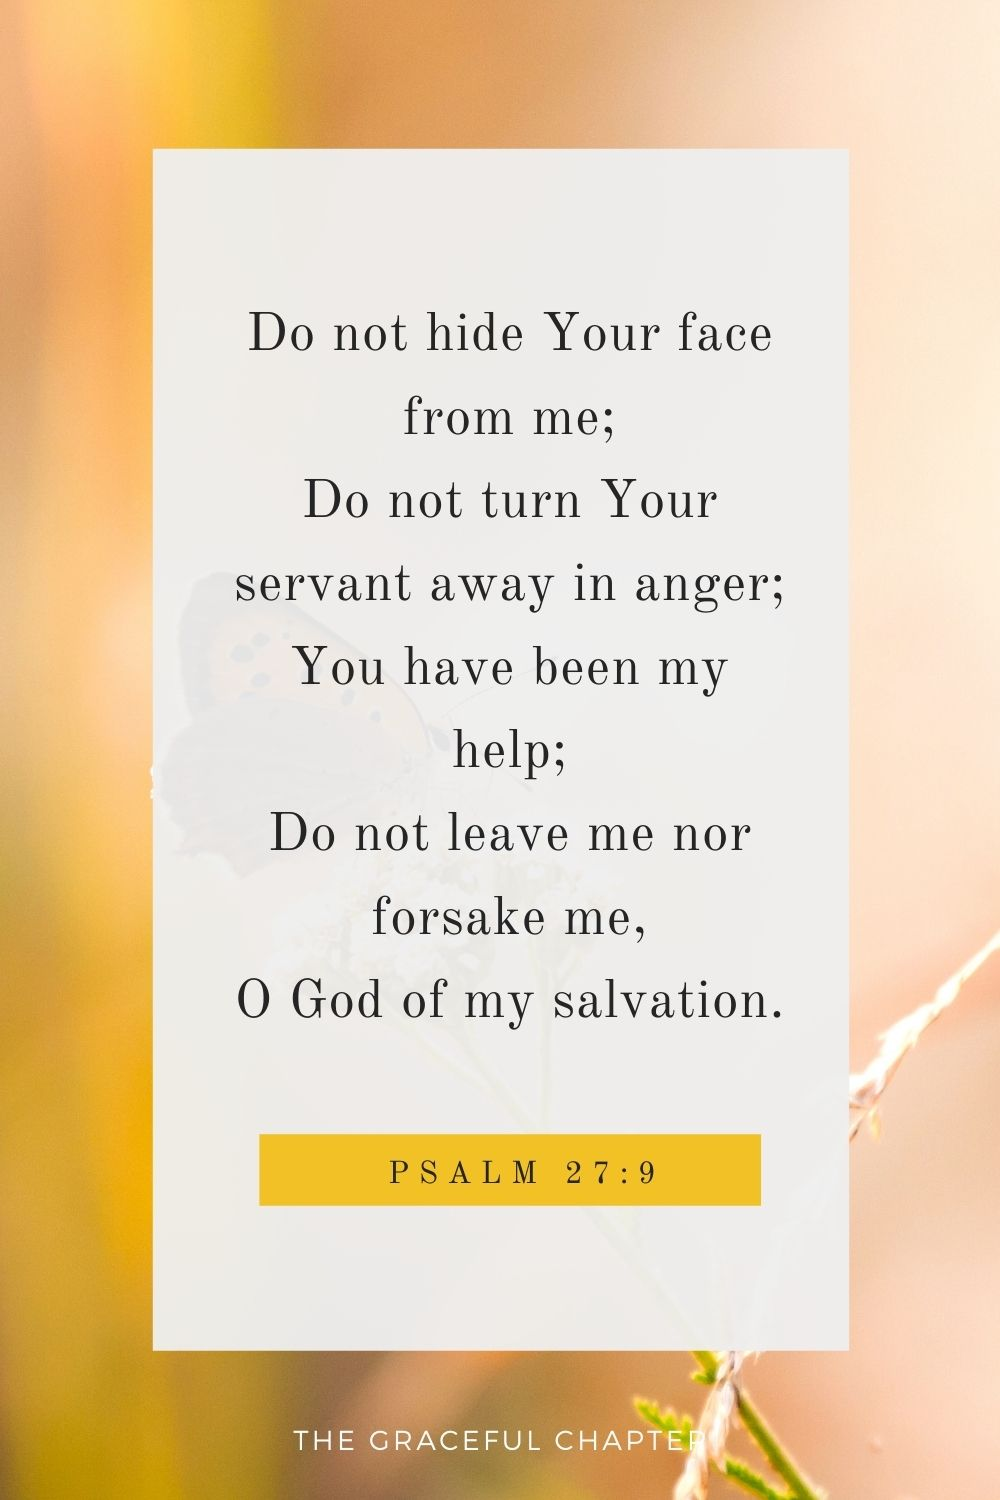 Do not hide Your face from me; Do not turn Your servant away in anger; You have been my help; Do not leave me nor forsake me, O God of my salvation. Psalm 27:9